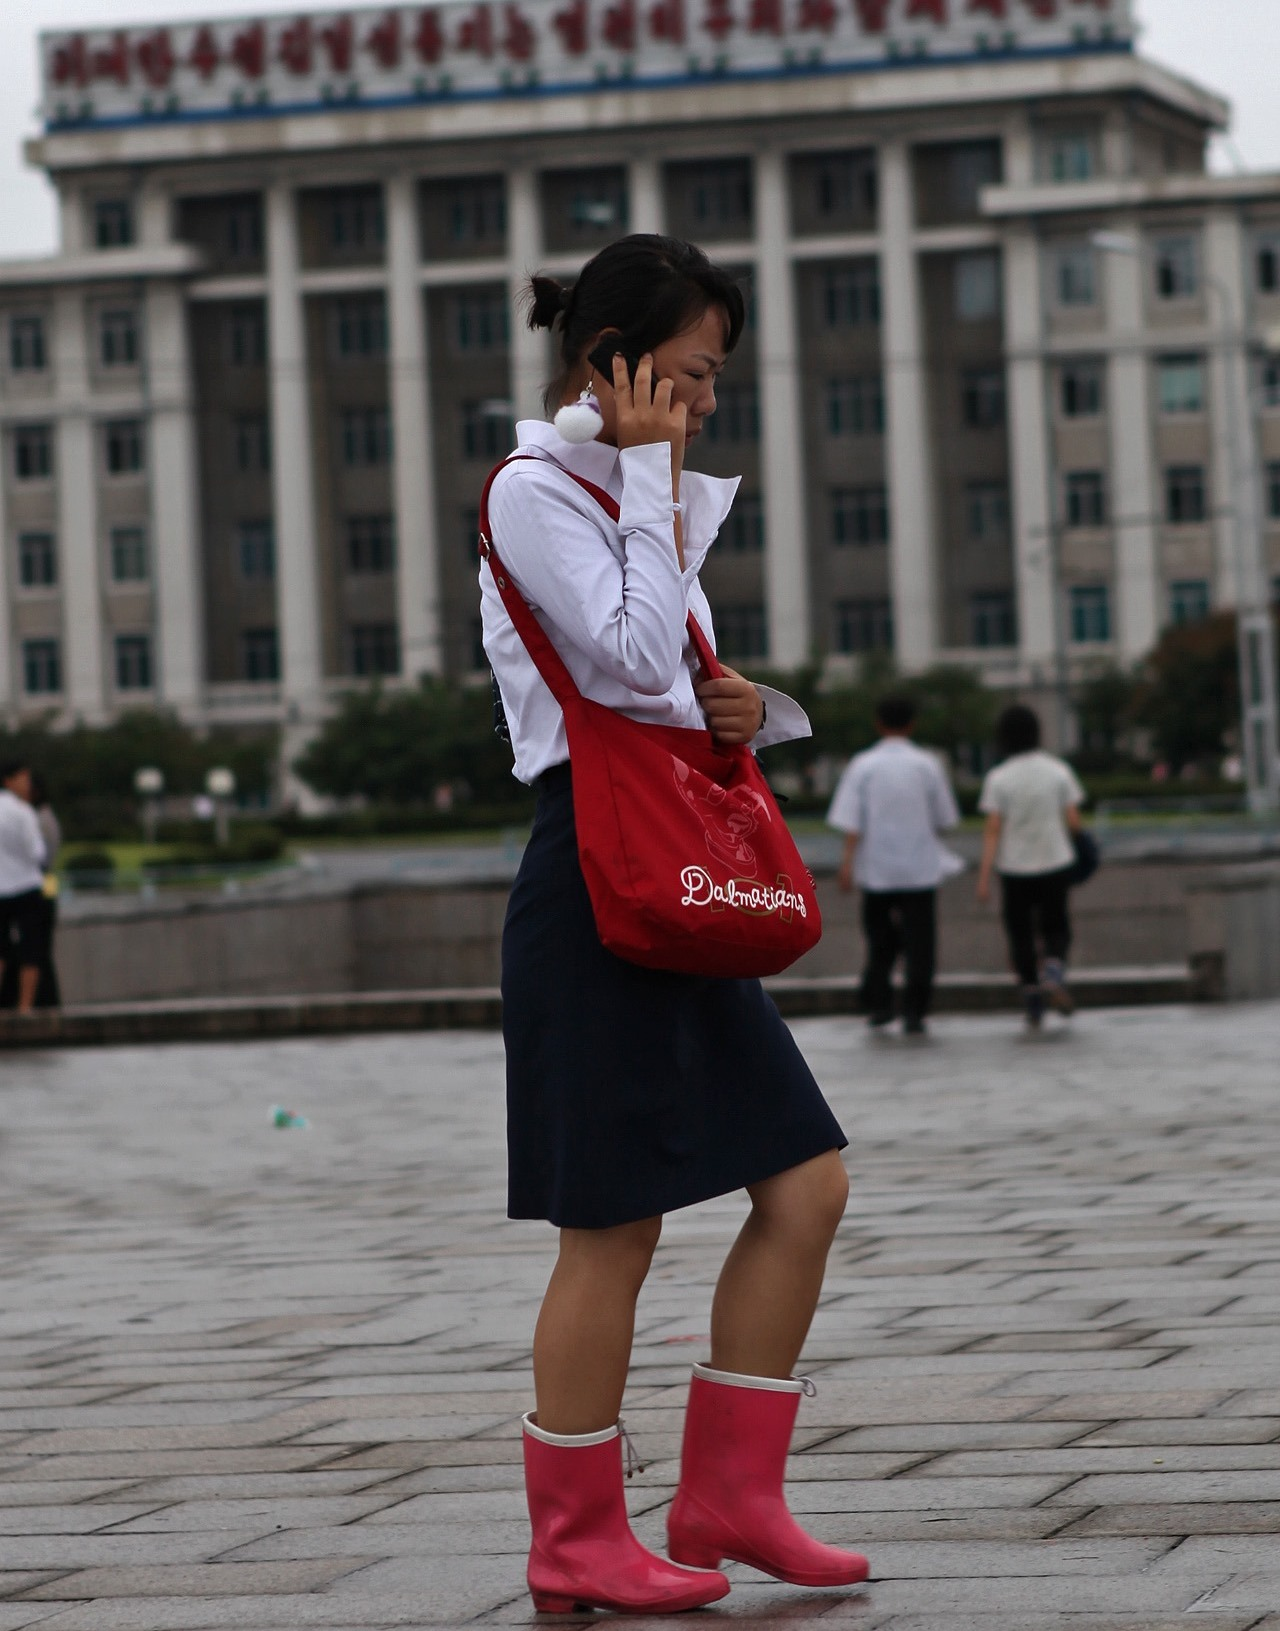 North Korean women prefer mobile phones to engagement